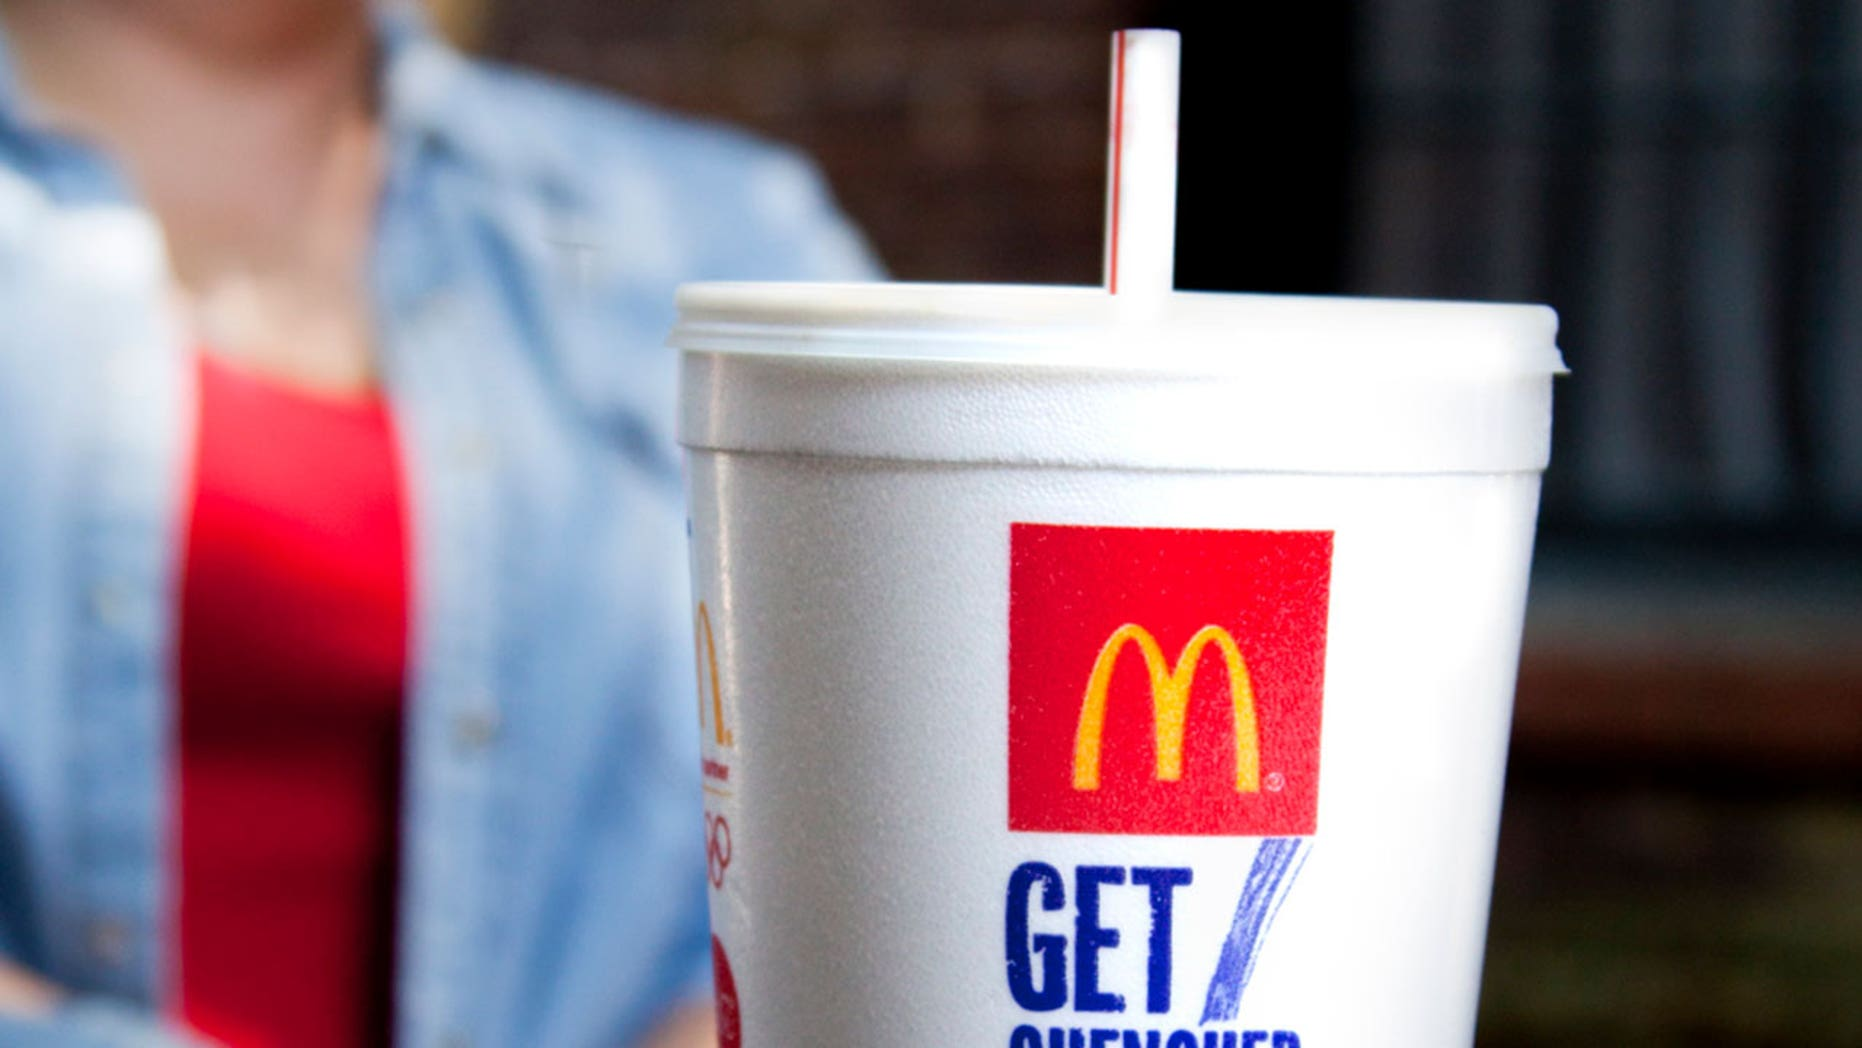 McDonald's announced plans to phase out polystyrene foam cups from its global supply chain by 2018.